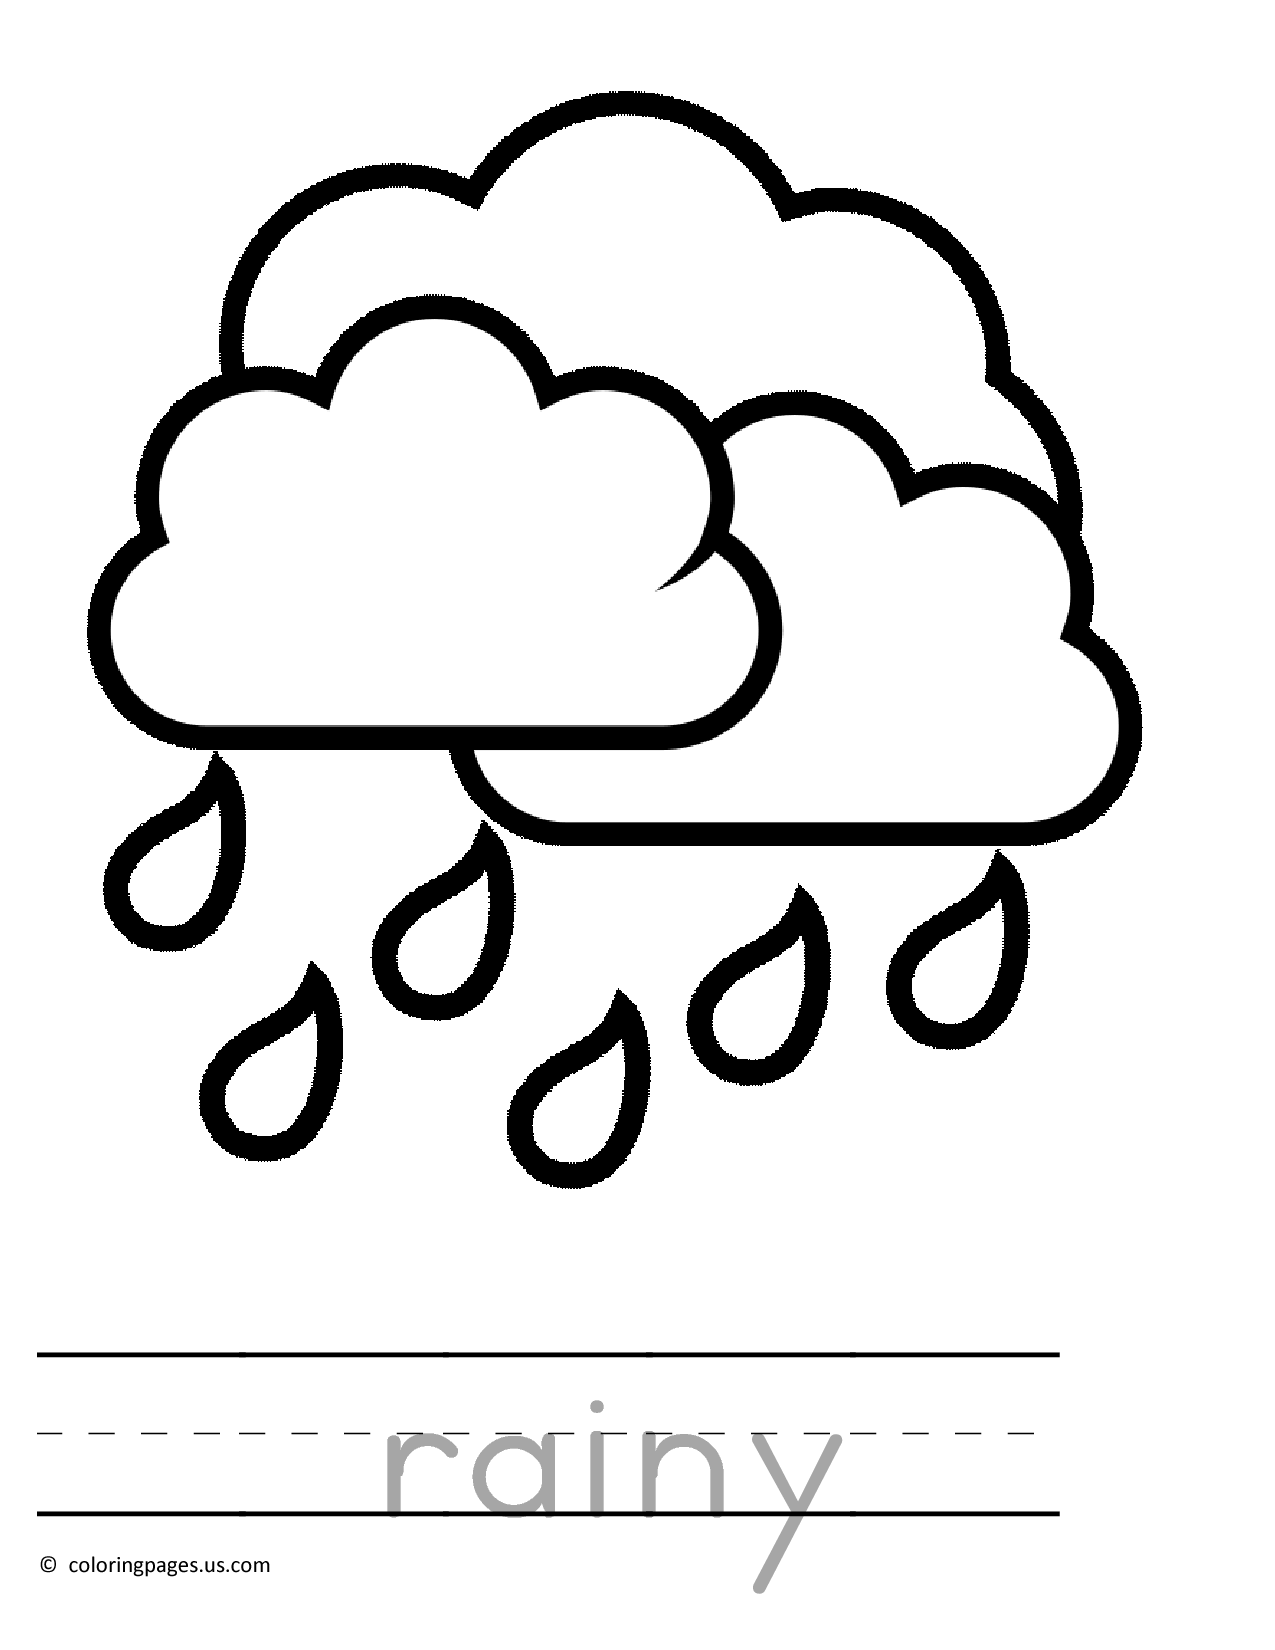 Free coloring pages rainy day - 21 Free Pictures For Rainy Day Coloring Pages Temoon Us